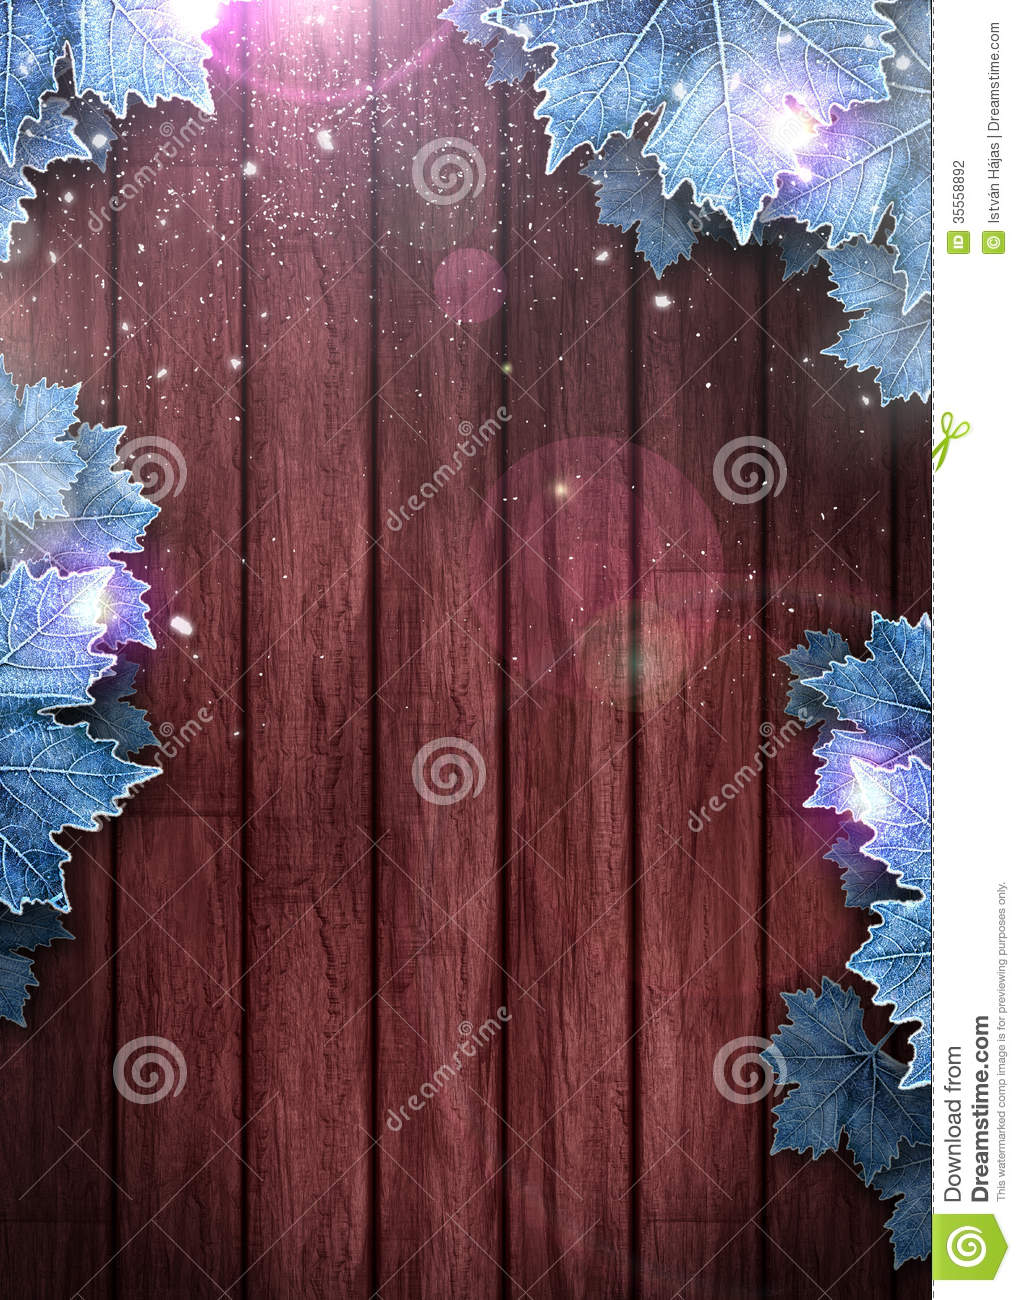 winter business or invitation background stock photography image winter business or invitation background